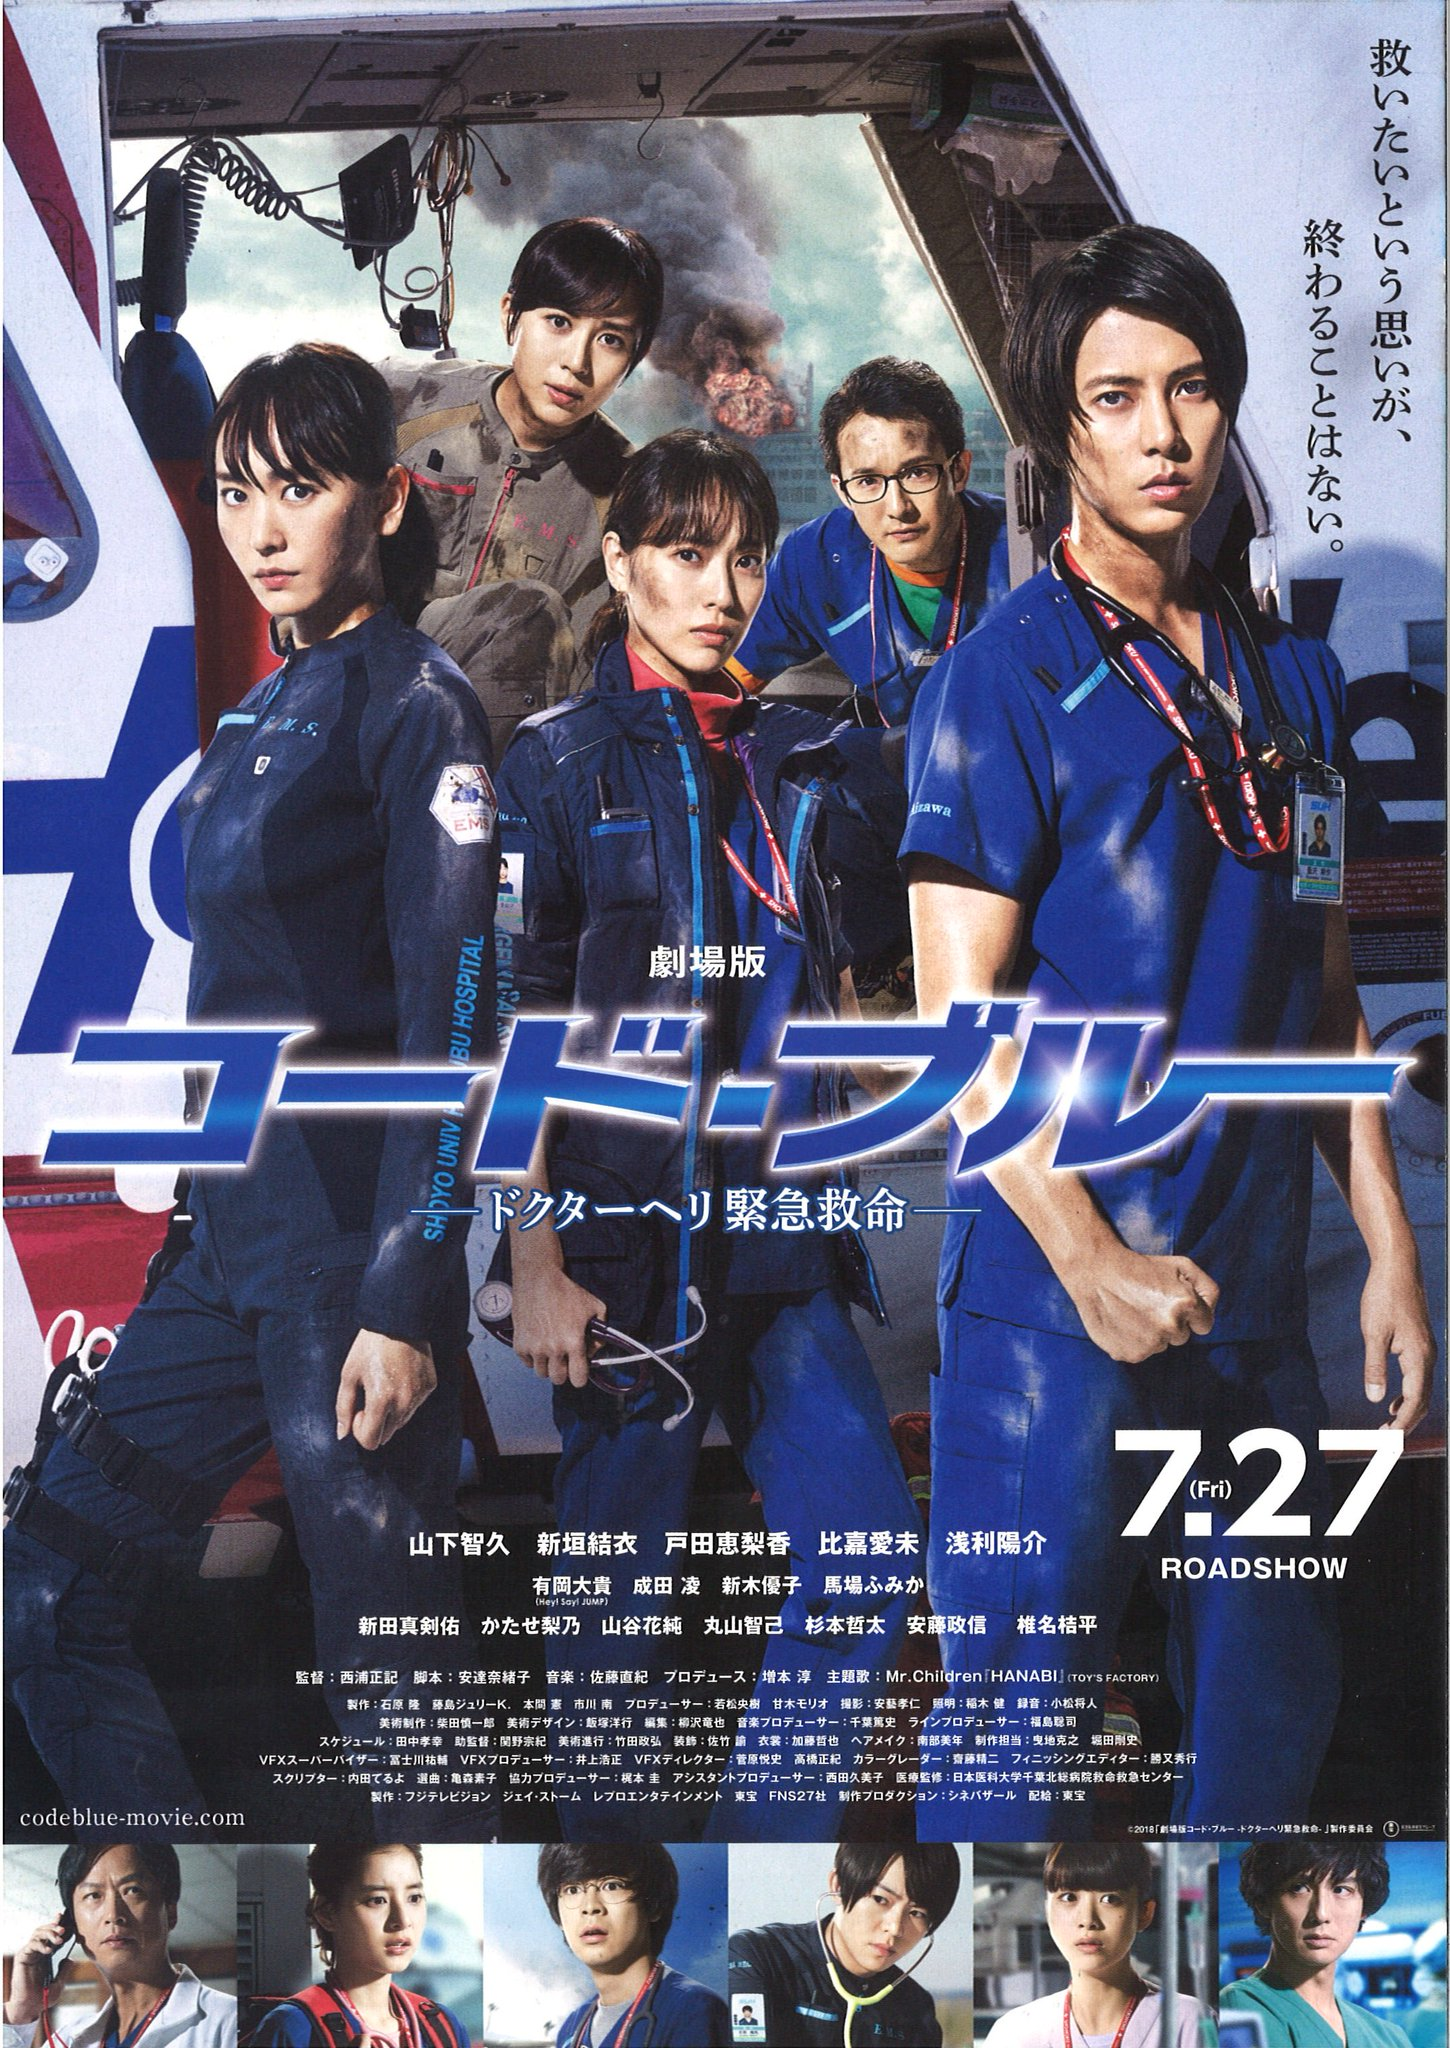 Code Blue poster